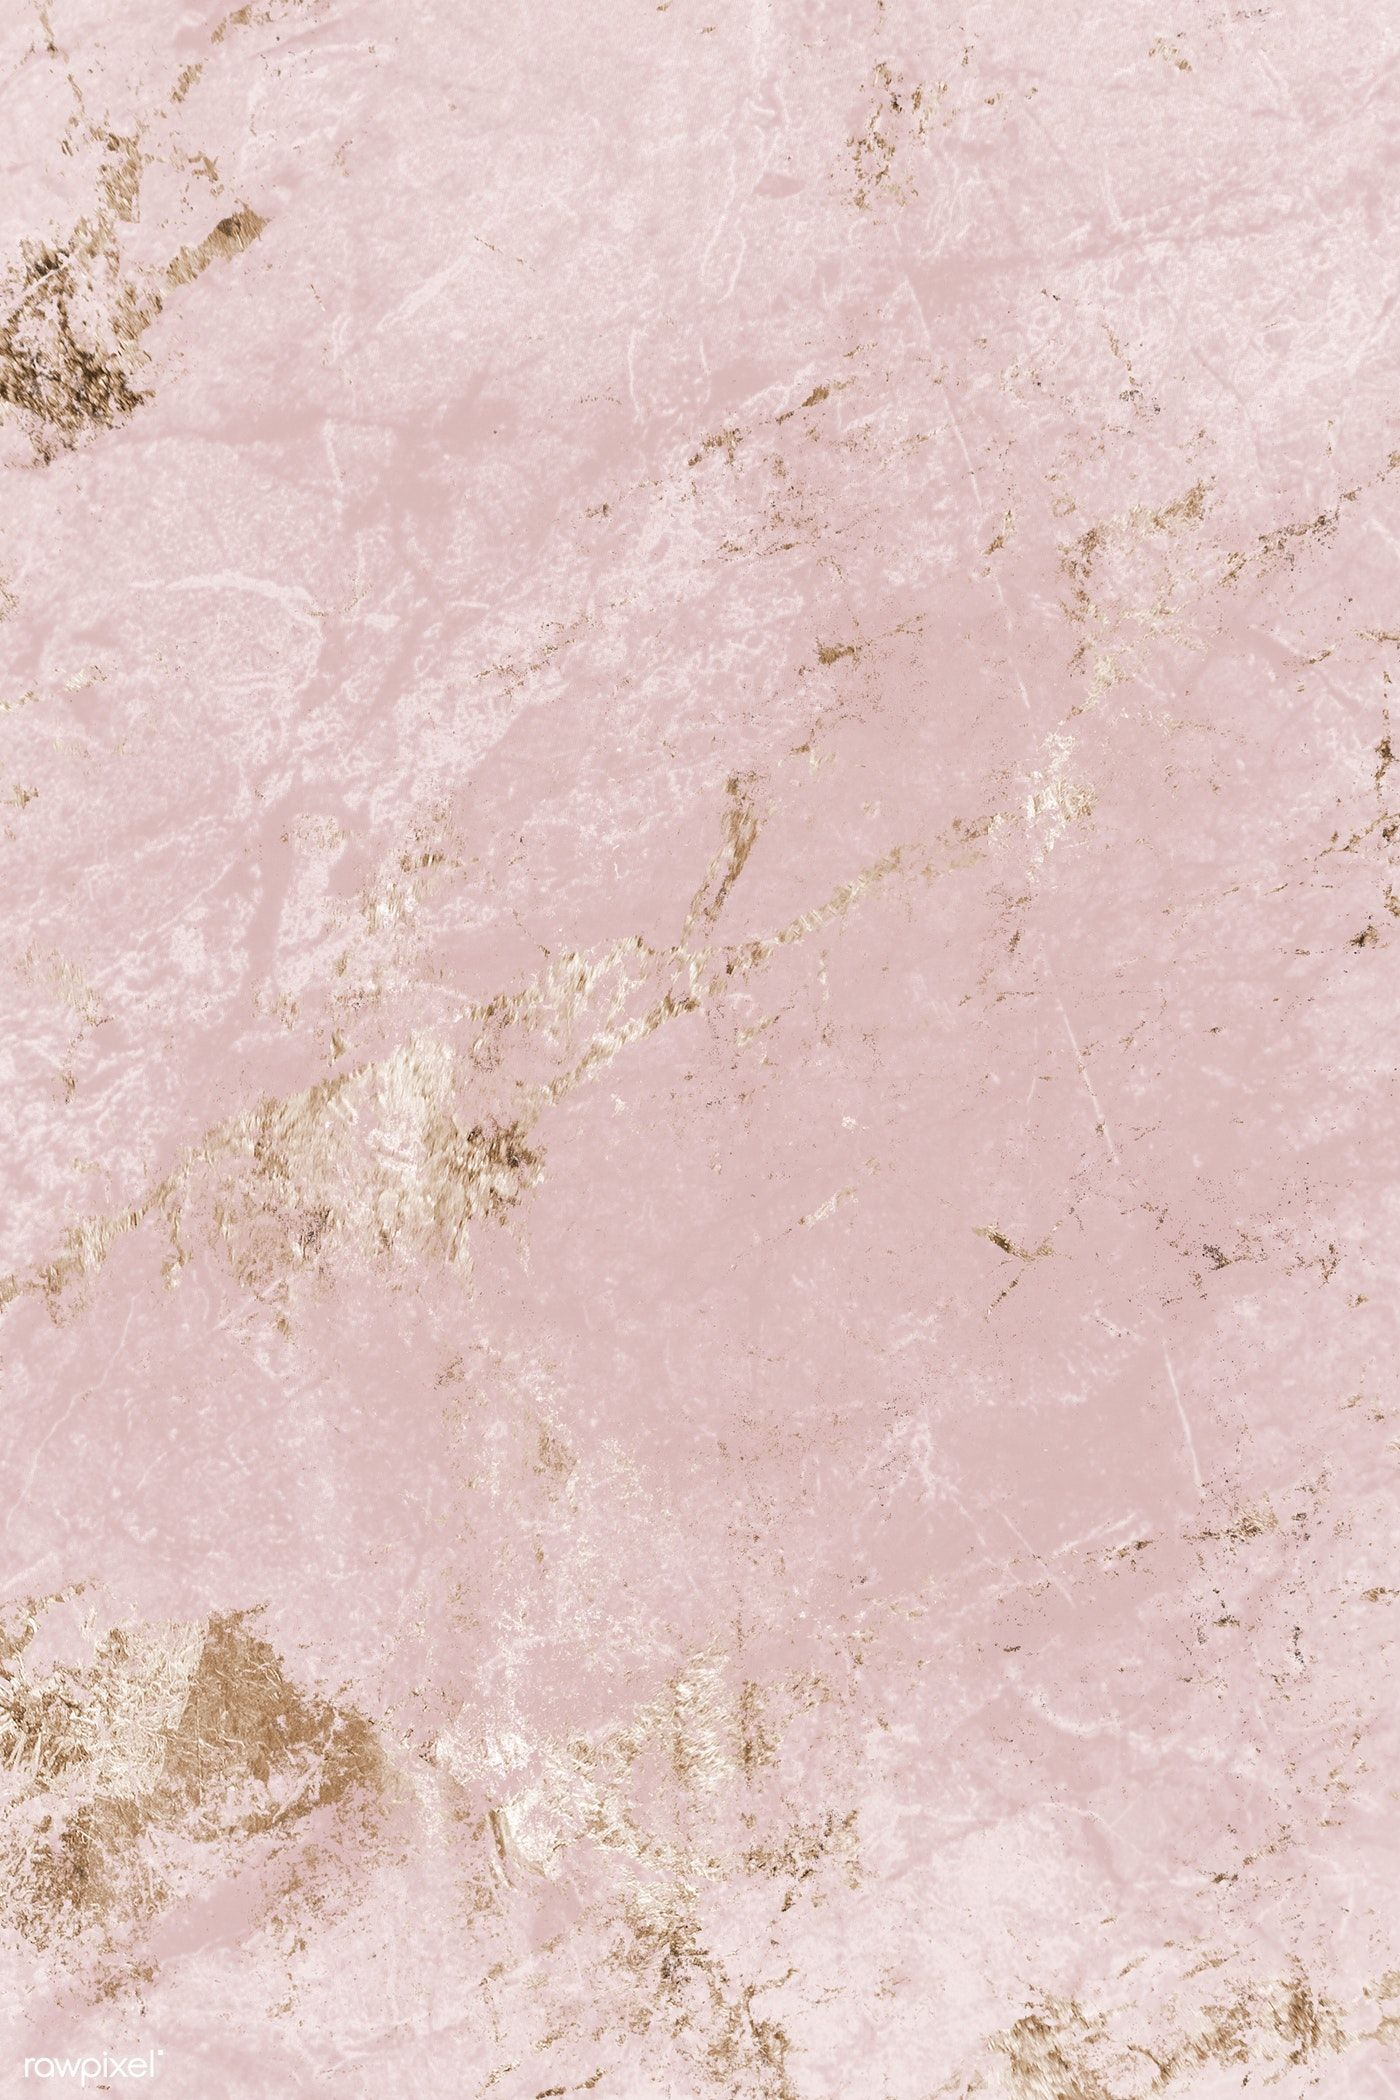 Pink And Gold Marble Textured Background Free Image By Rawpixel Com Chim Cement Texture Gold Wallpaper Background Marble Wallpaper Phone